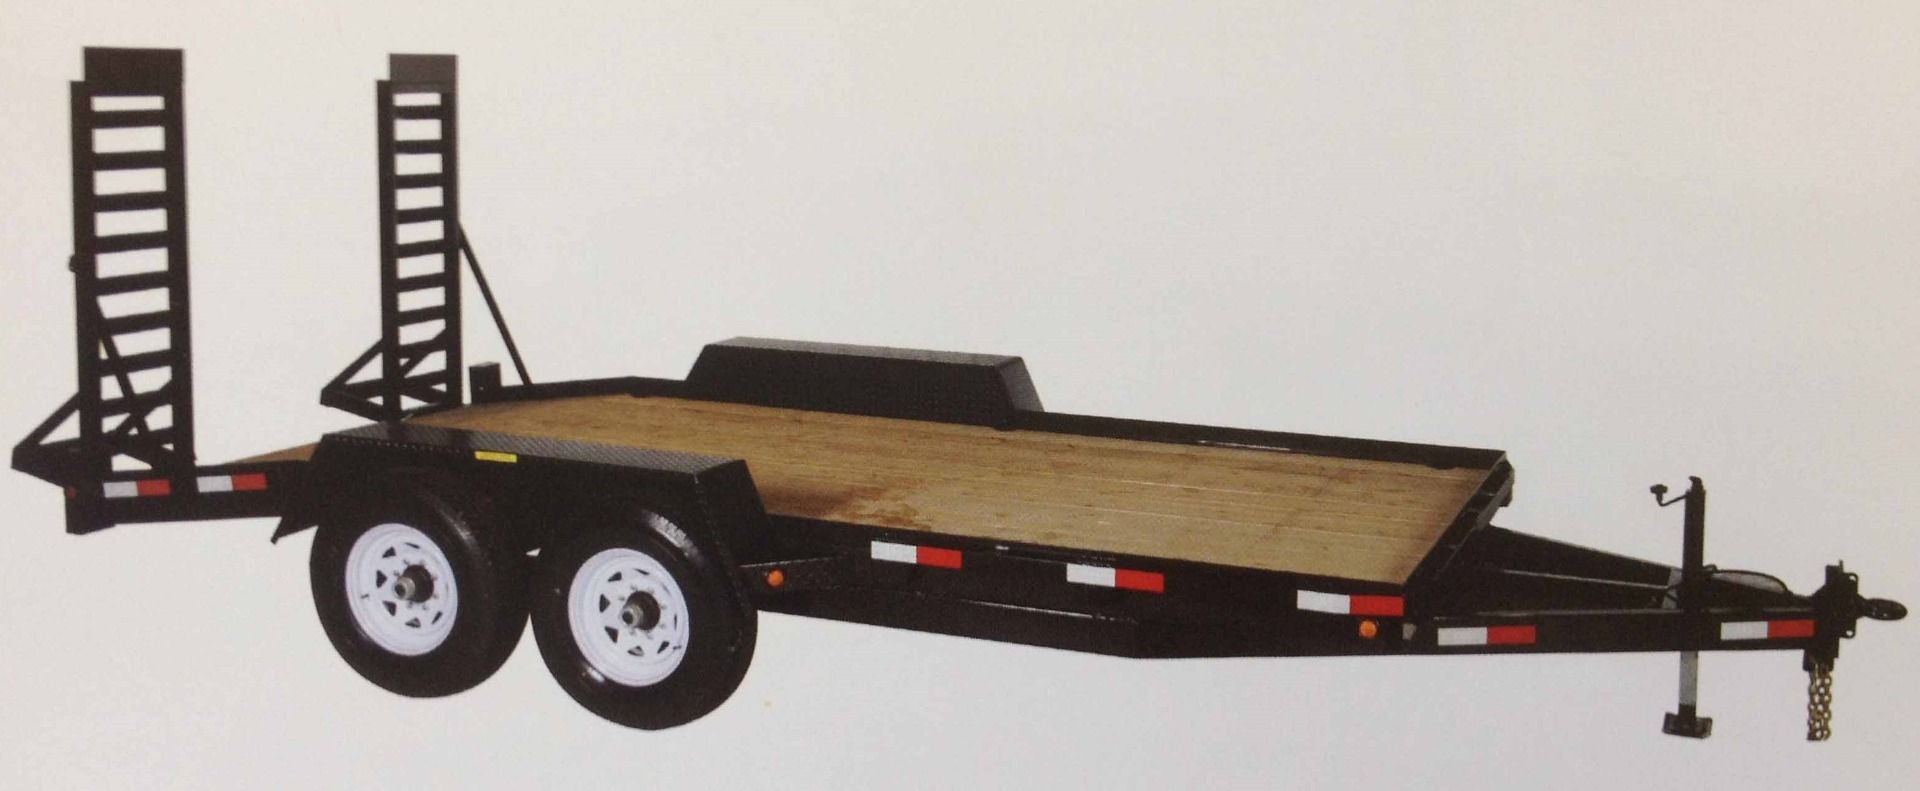 "JDJ Equipment Float with Fenders Tandem Trailer (6'8"" W x 18' L) Model BC 12000-18"